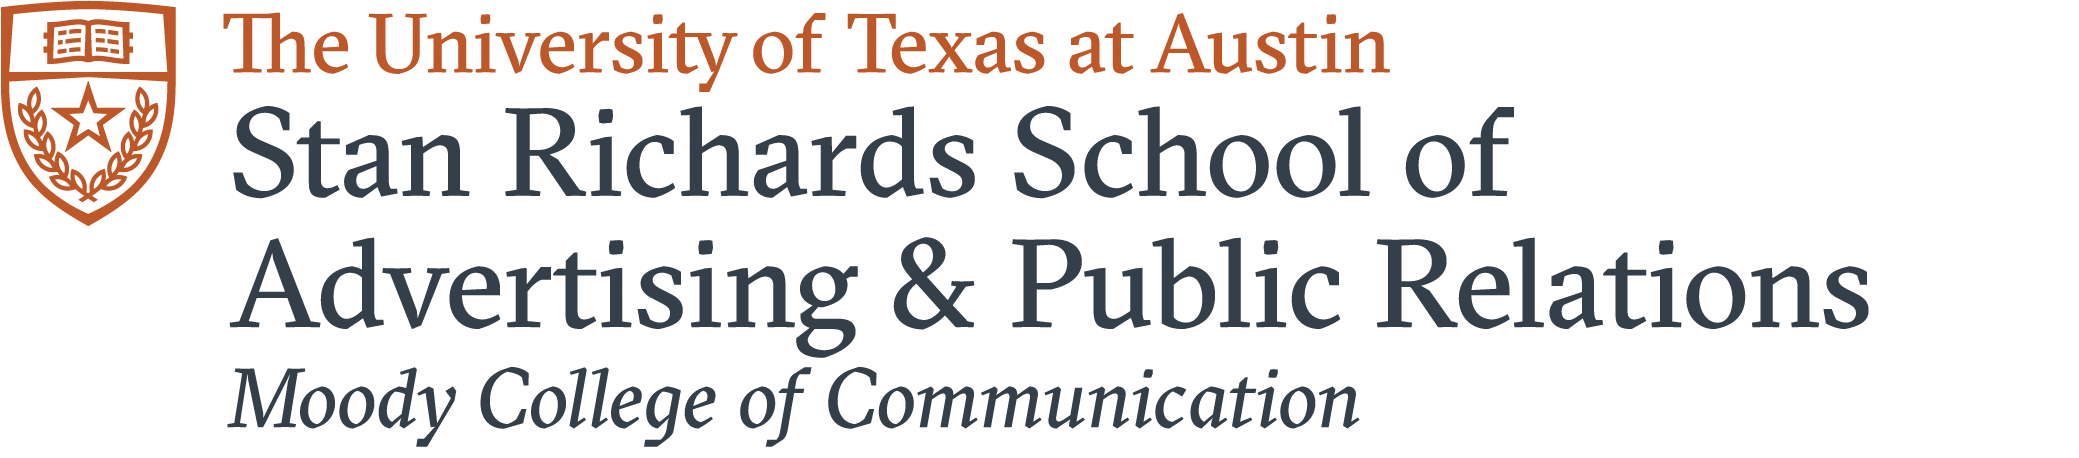 University of Texas School of Advertising Logo